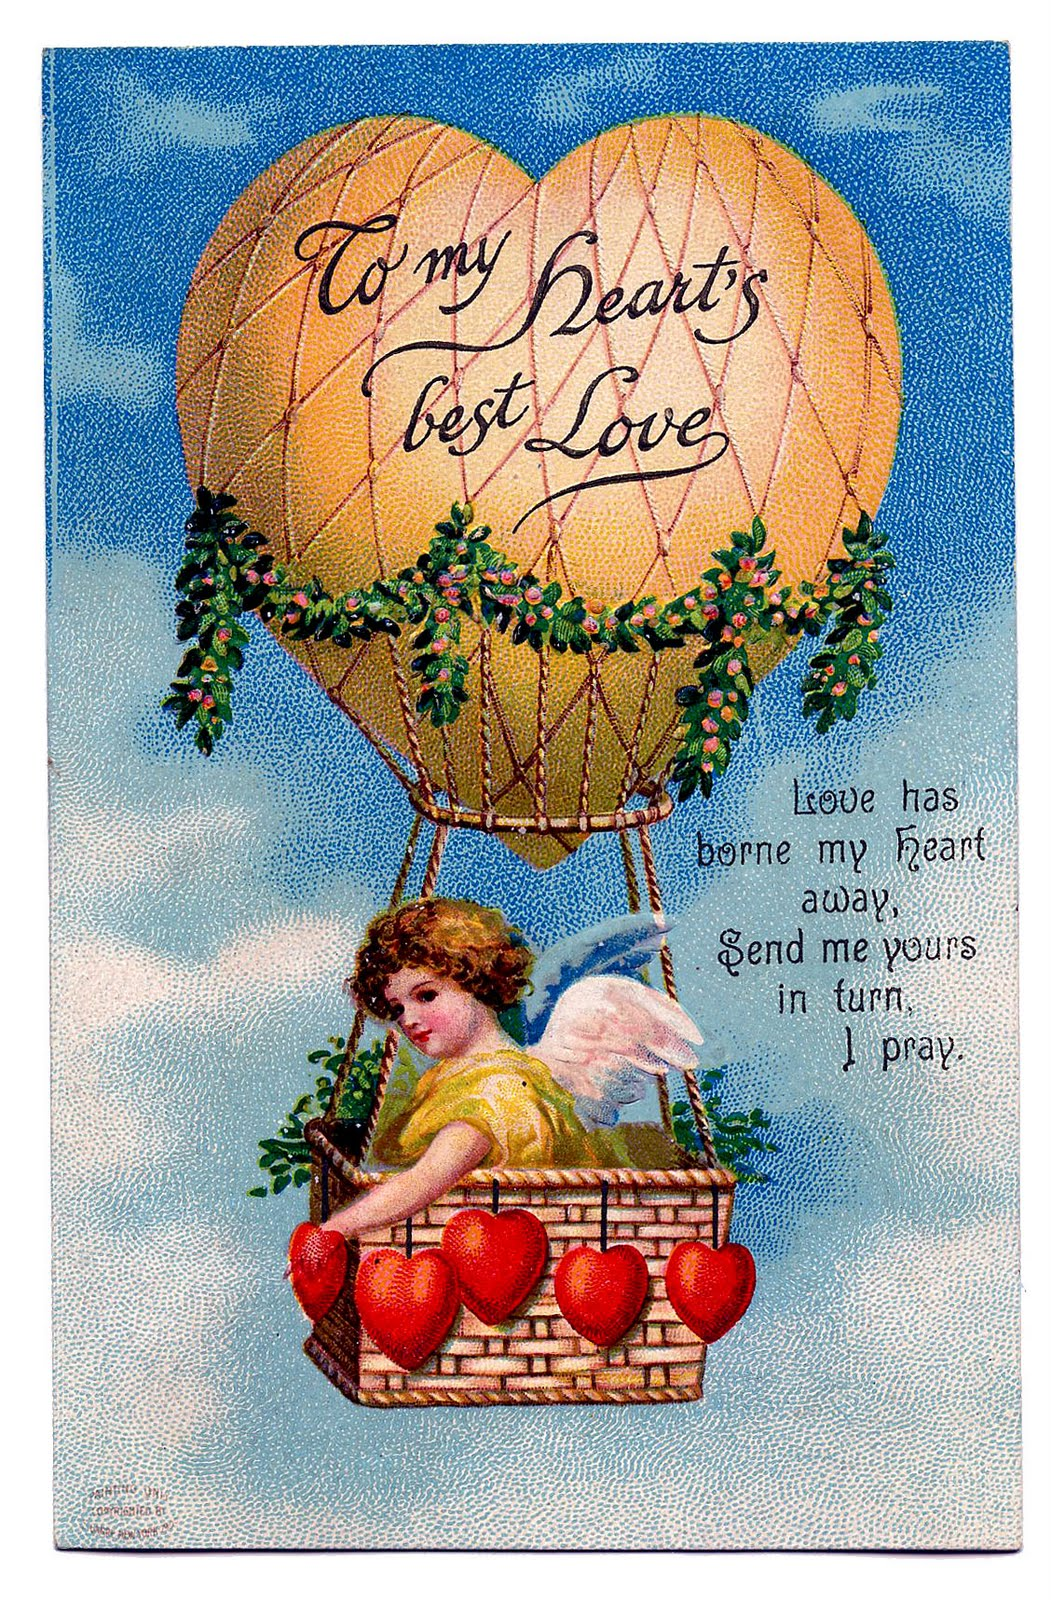 Vintage Valentines Day Clip Art  Cupid in Heart Shaped Balloon